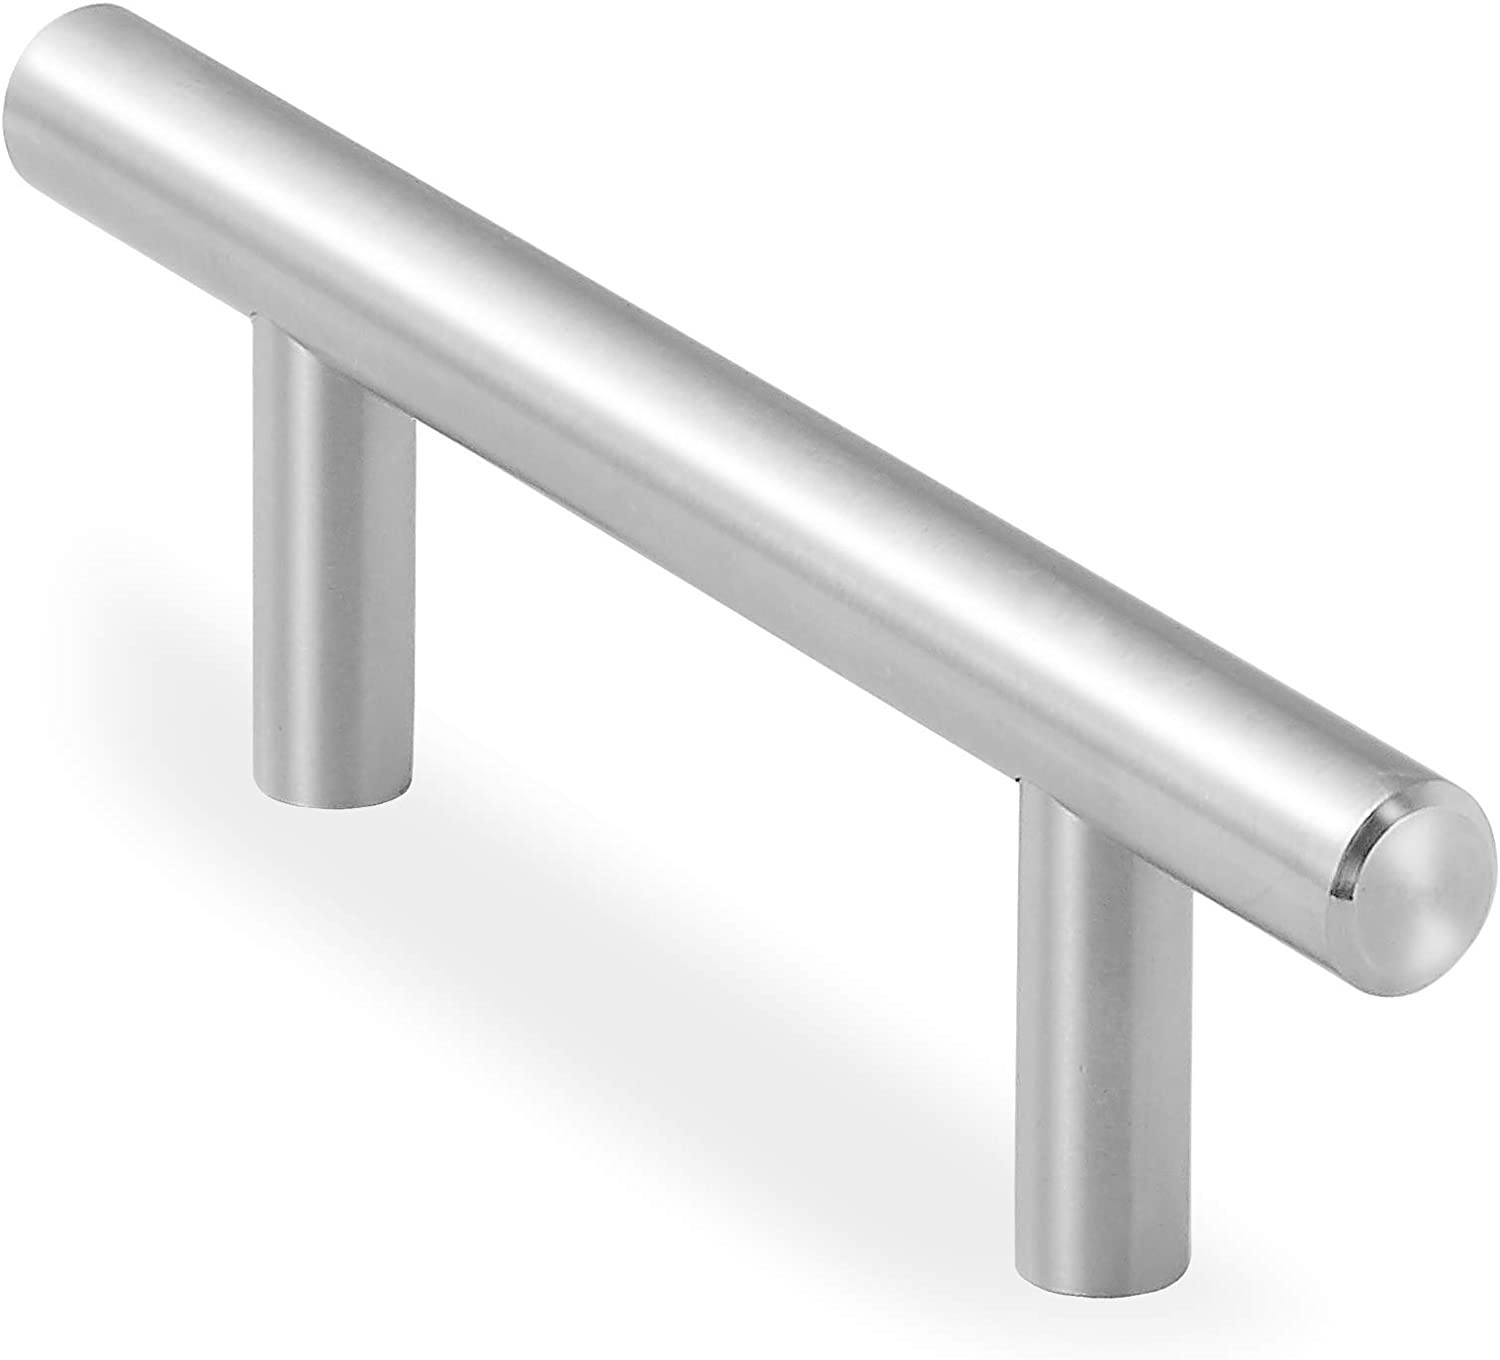 Cauldham 25 Pack Solid Stainless Steel Euro Bar Cabinet Handle Pull - 3 Inch Hole Centers, 5-3/8 Inch Overall